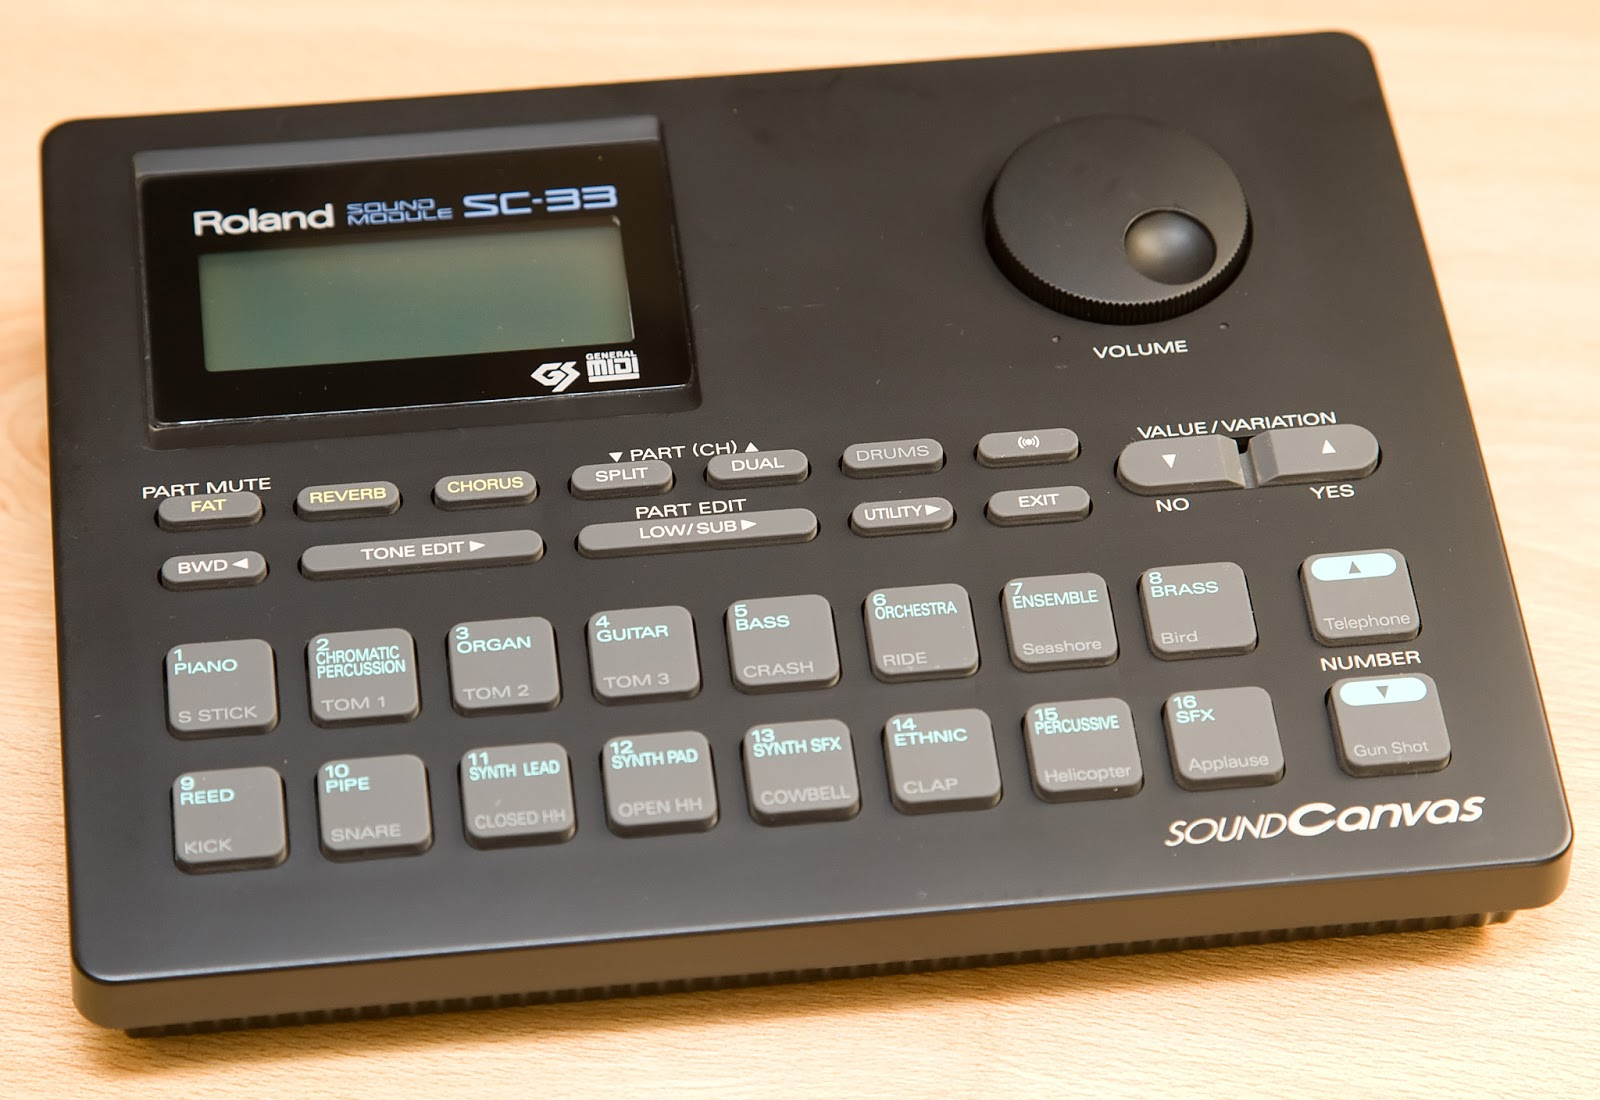 Roland Sound Canvas engine RA-90 arranger HQ sound revealed after 25